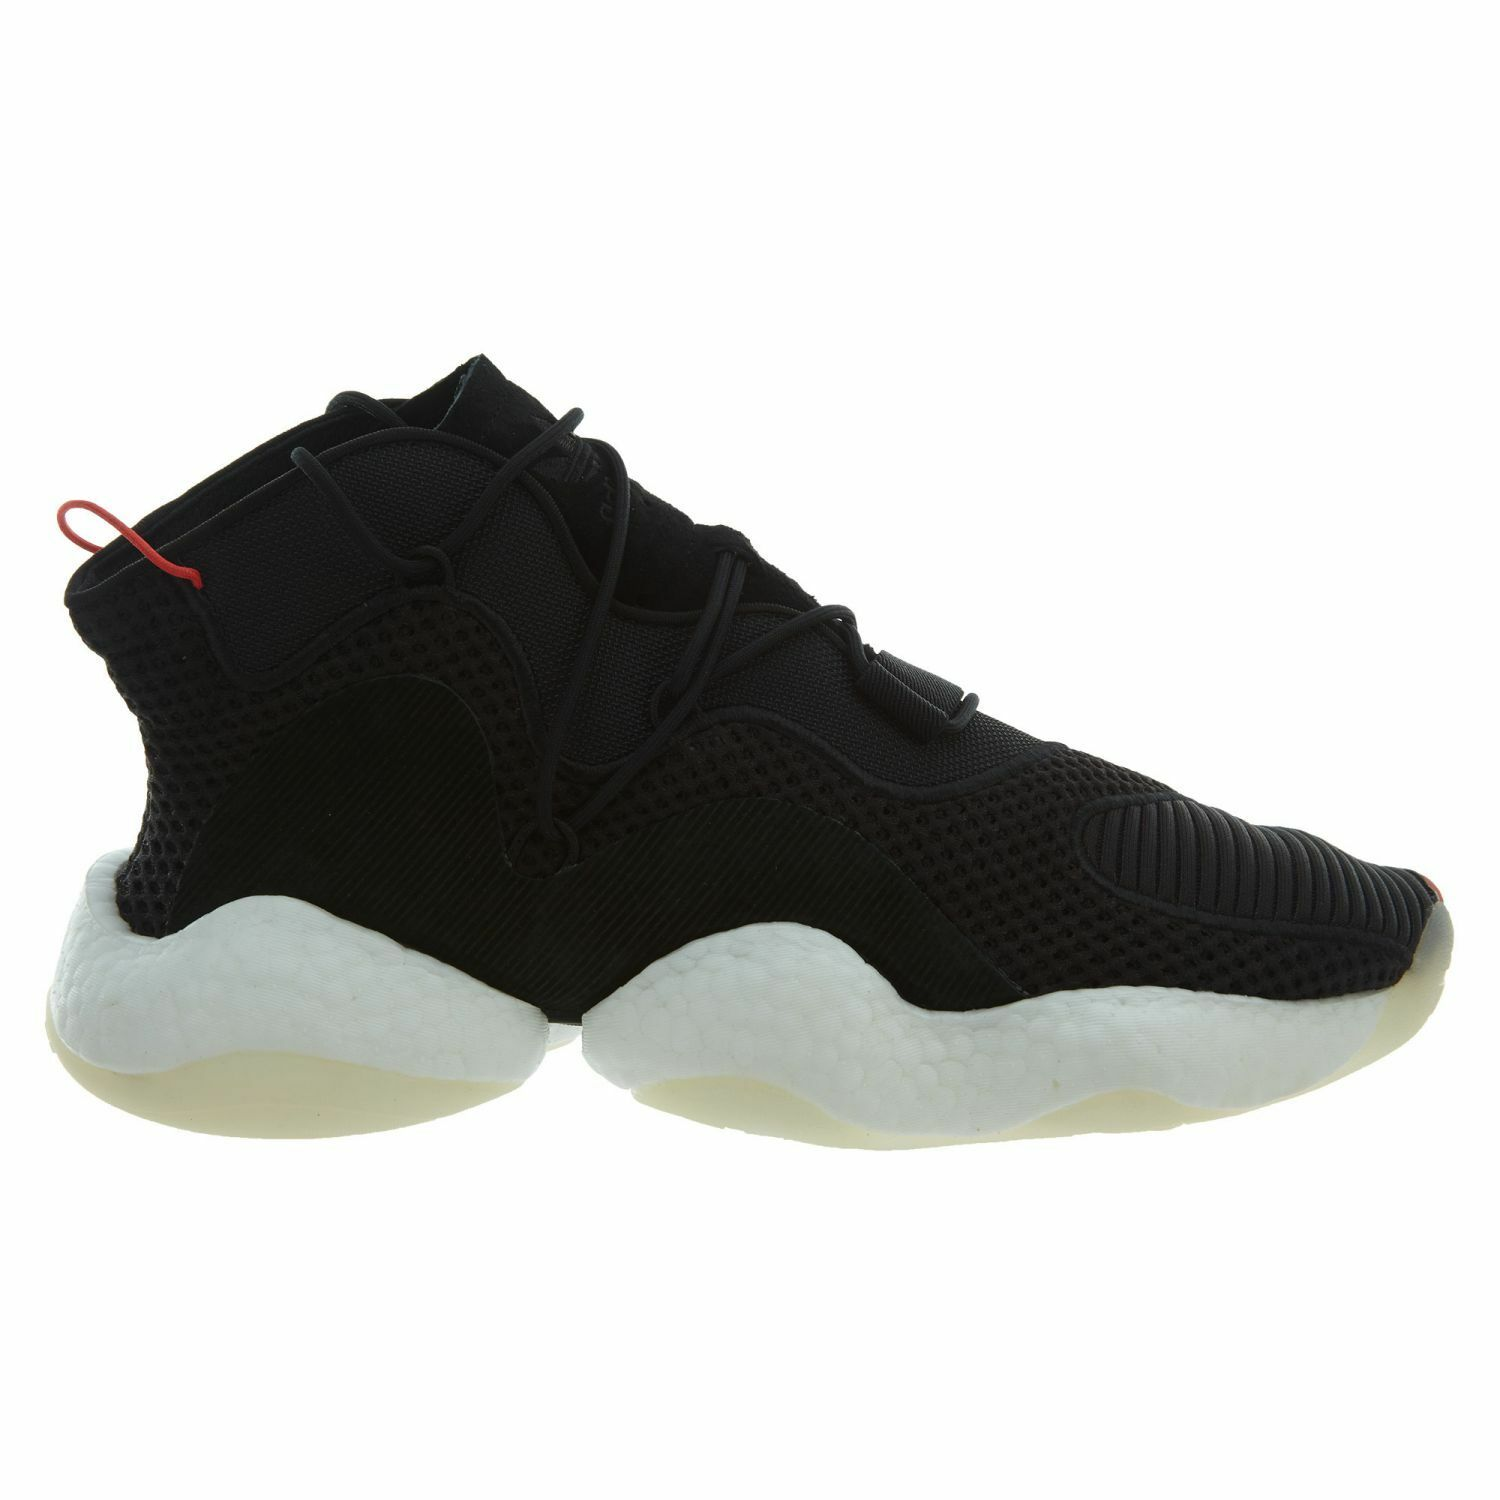 Adidas Crazy BYW Mens B37480 Black White Red Boost Basketball Shoes Size 8.5